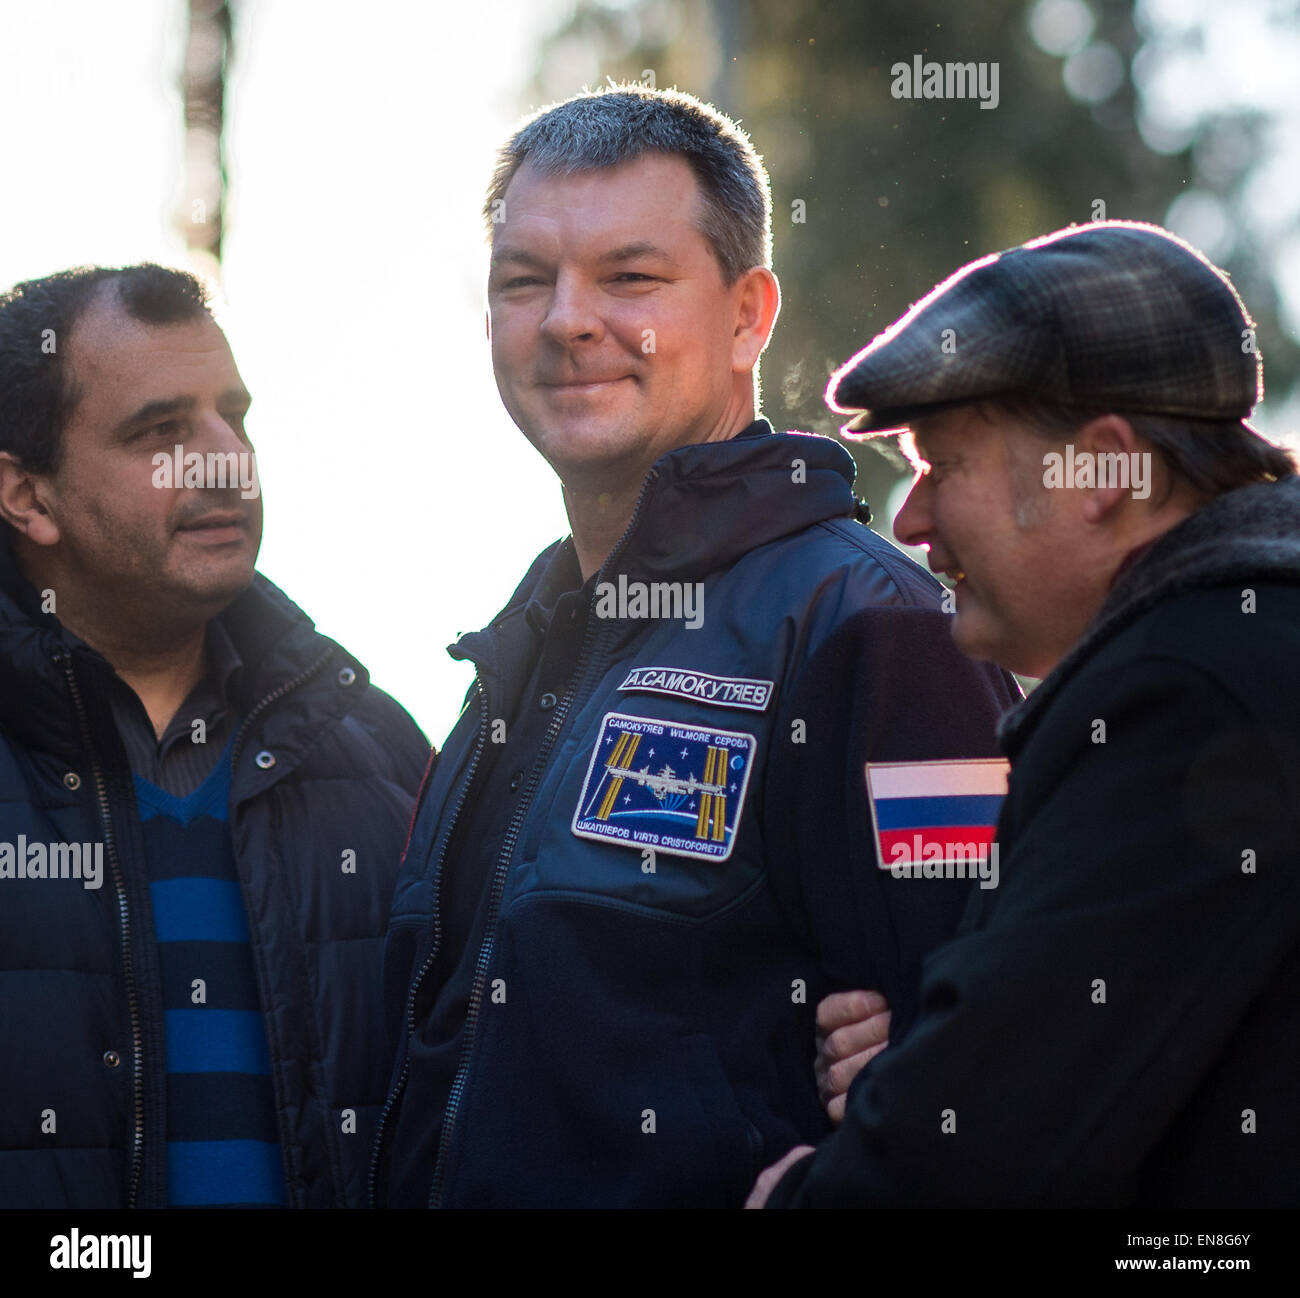 Expedition 42 Cosmonaut Alexander Samokutyaev of the Russian Federal Space Agency (Roscosmos), center, who returned - Stock Image